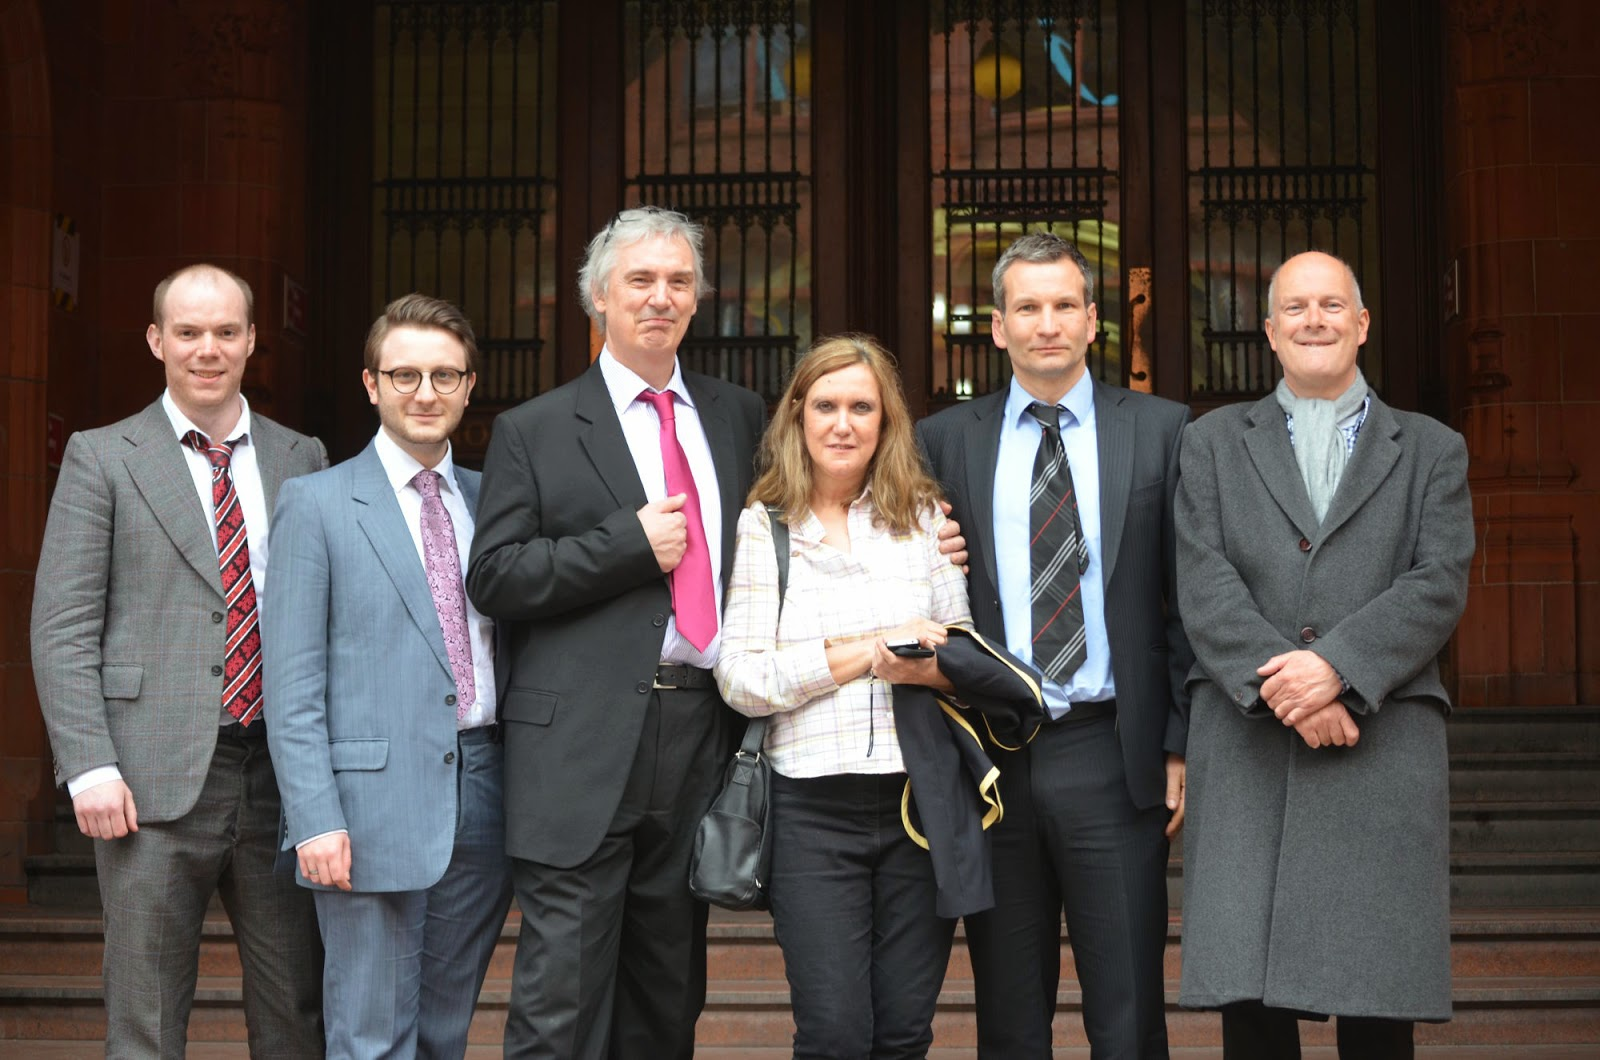 Some of Liberty GB outside the Court. From the left: Aaron Brian, Jack Buckby, Tim Burton, Enza Ferreri, Patrick Rourke, George Whale